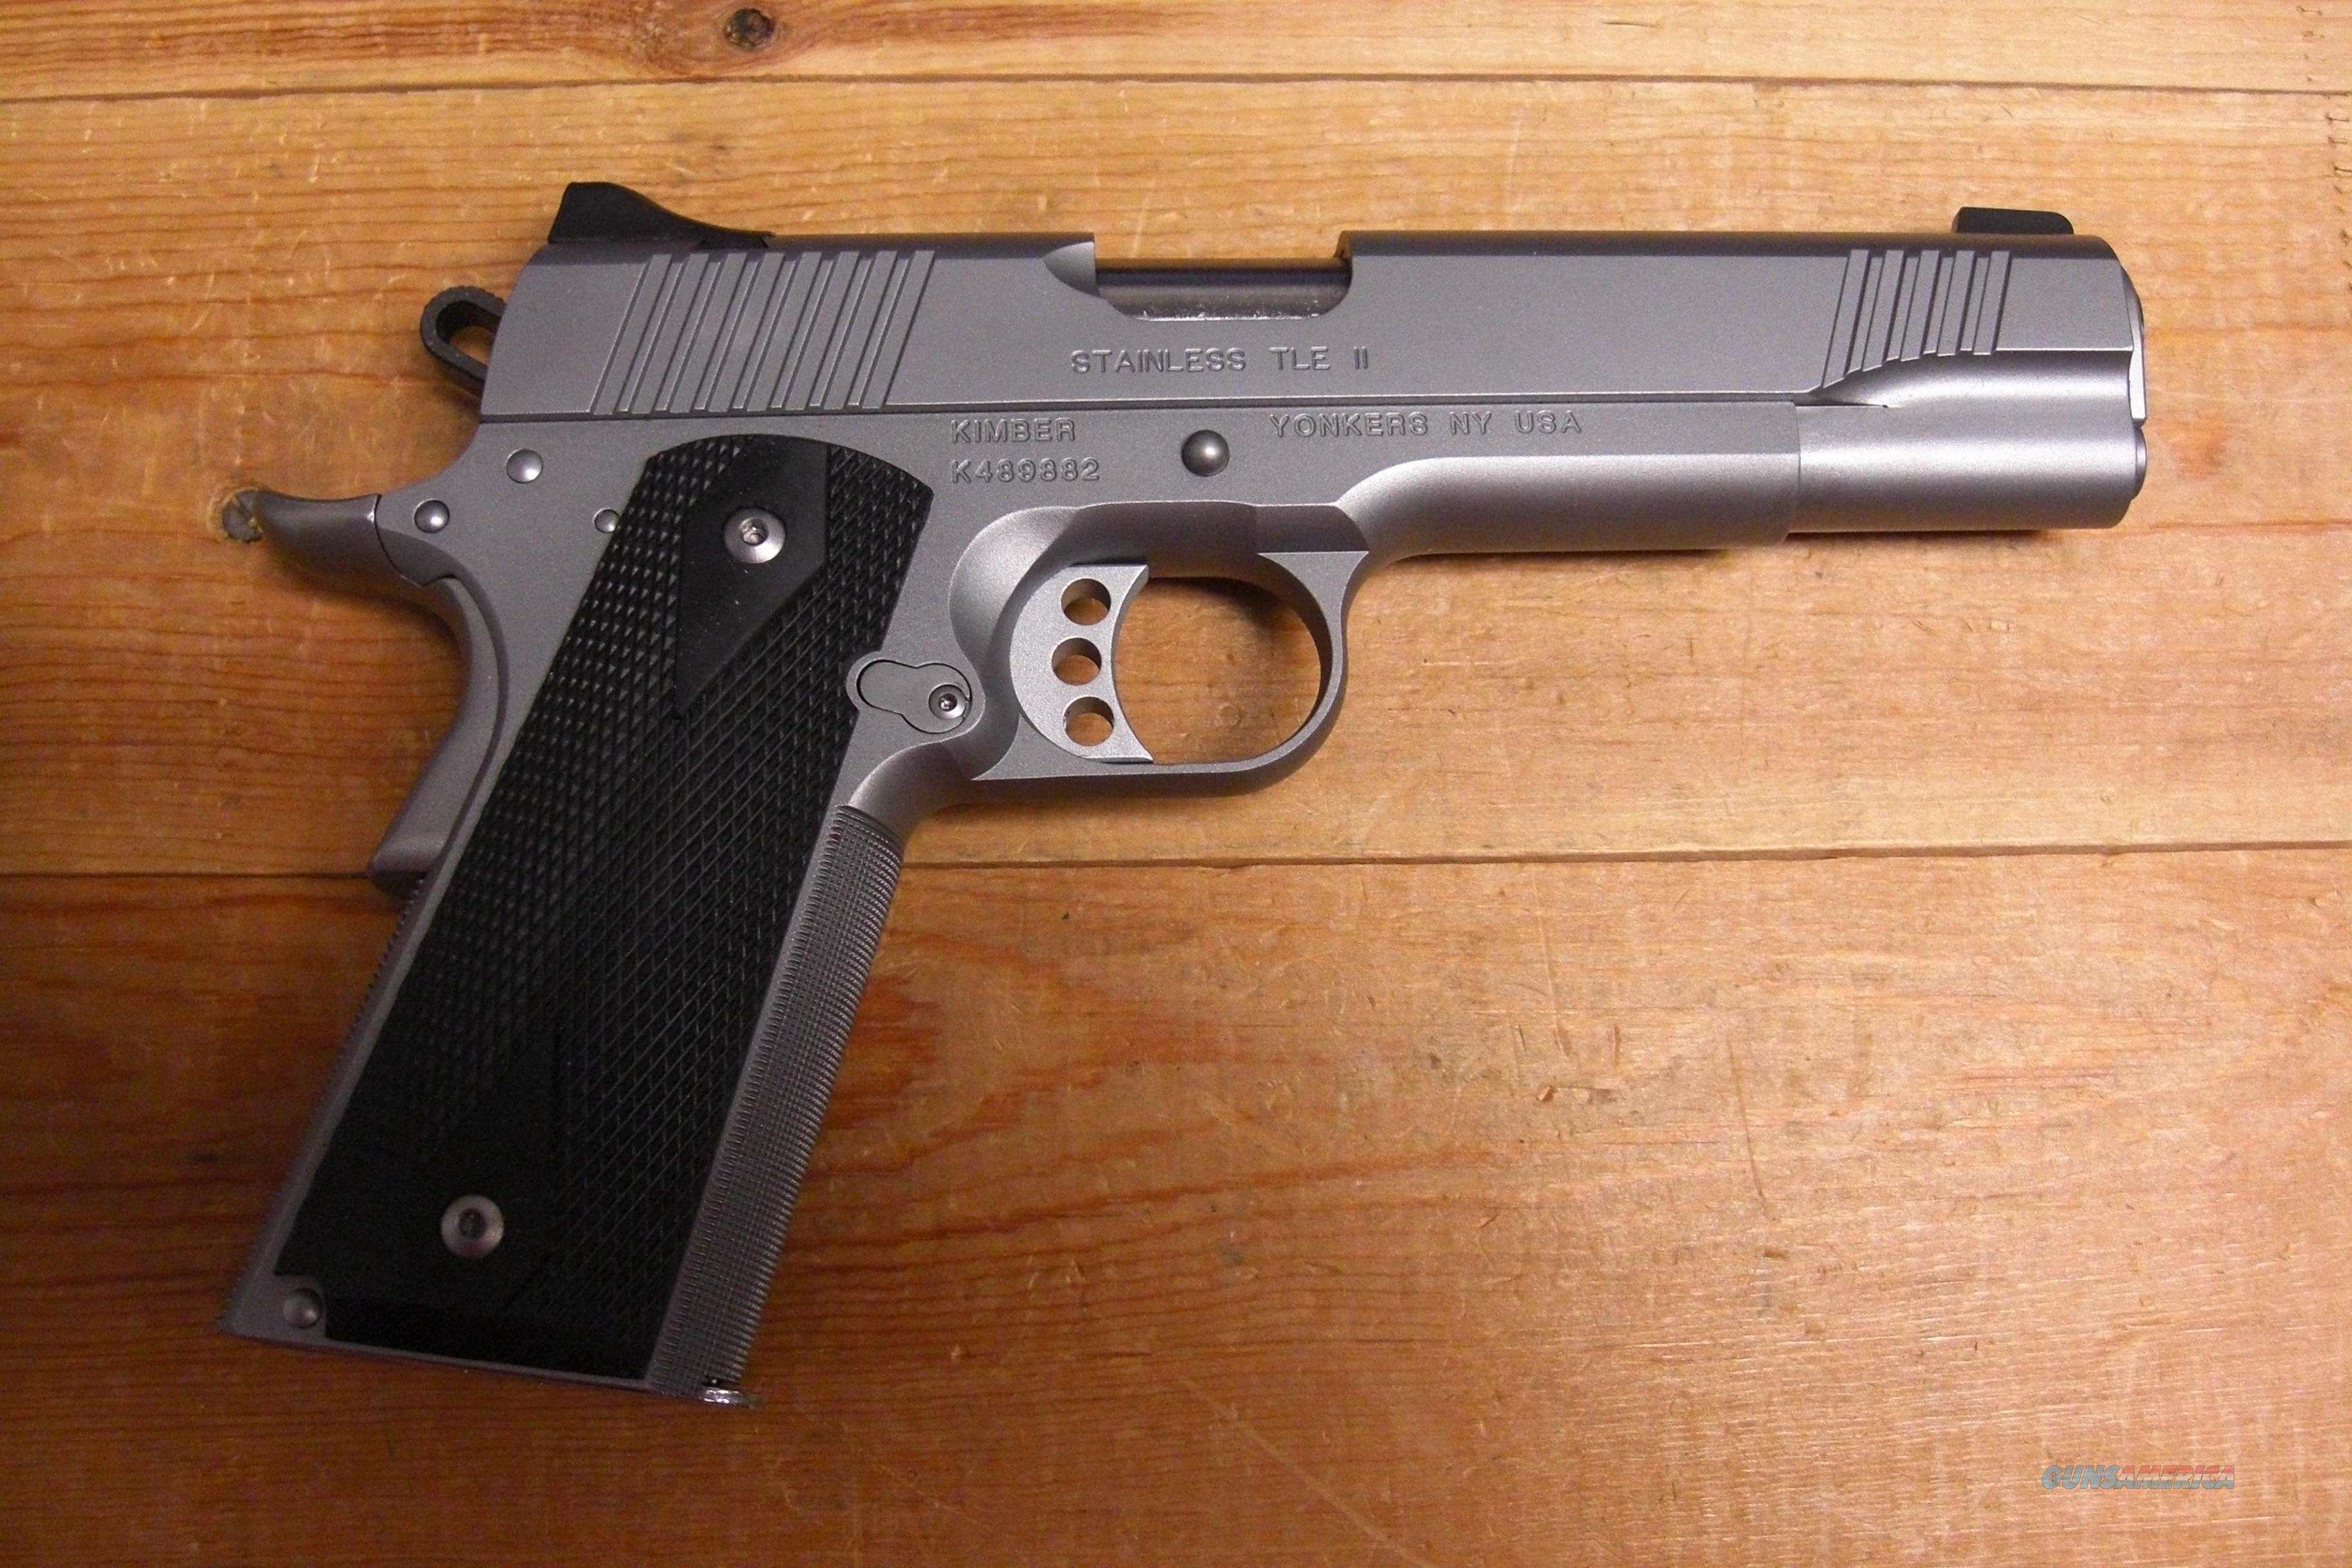 Stainless TLE II with night sights  Guns > Pistols > Kimber of America Pistols